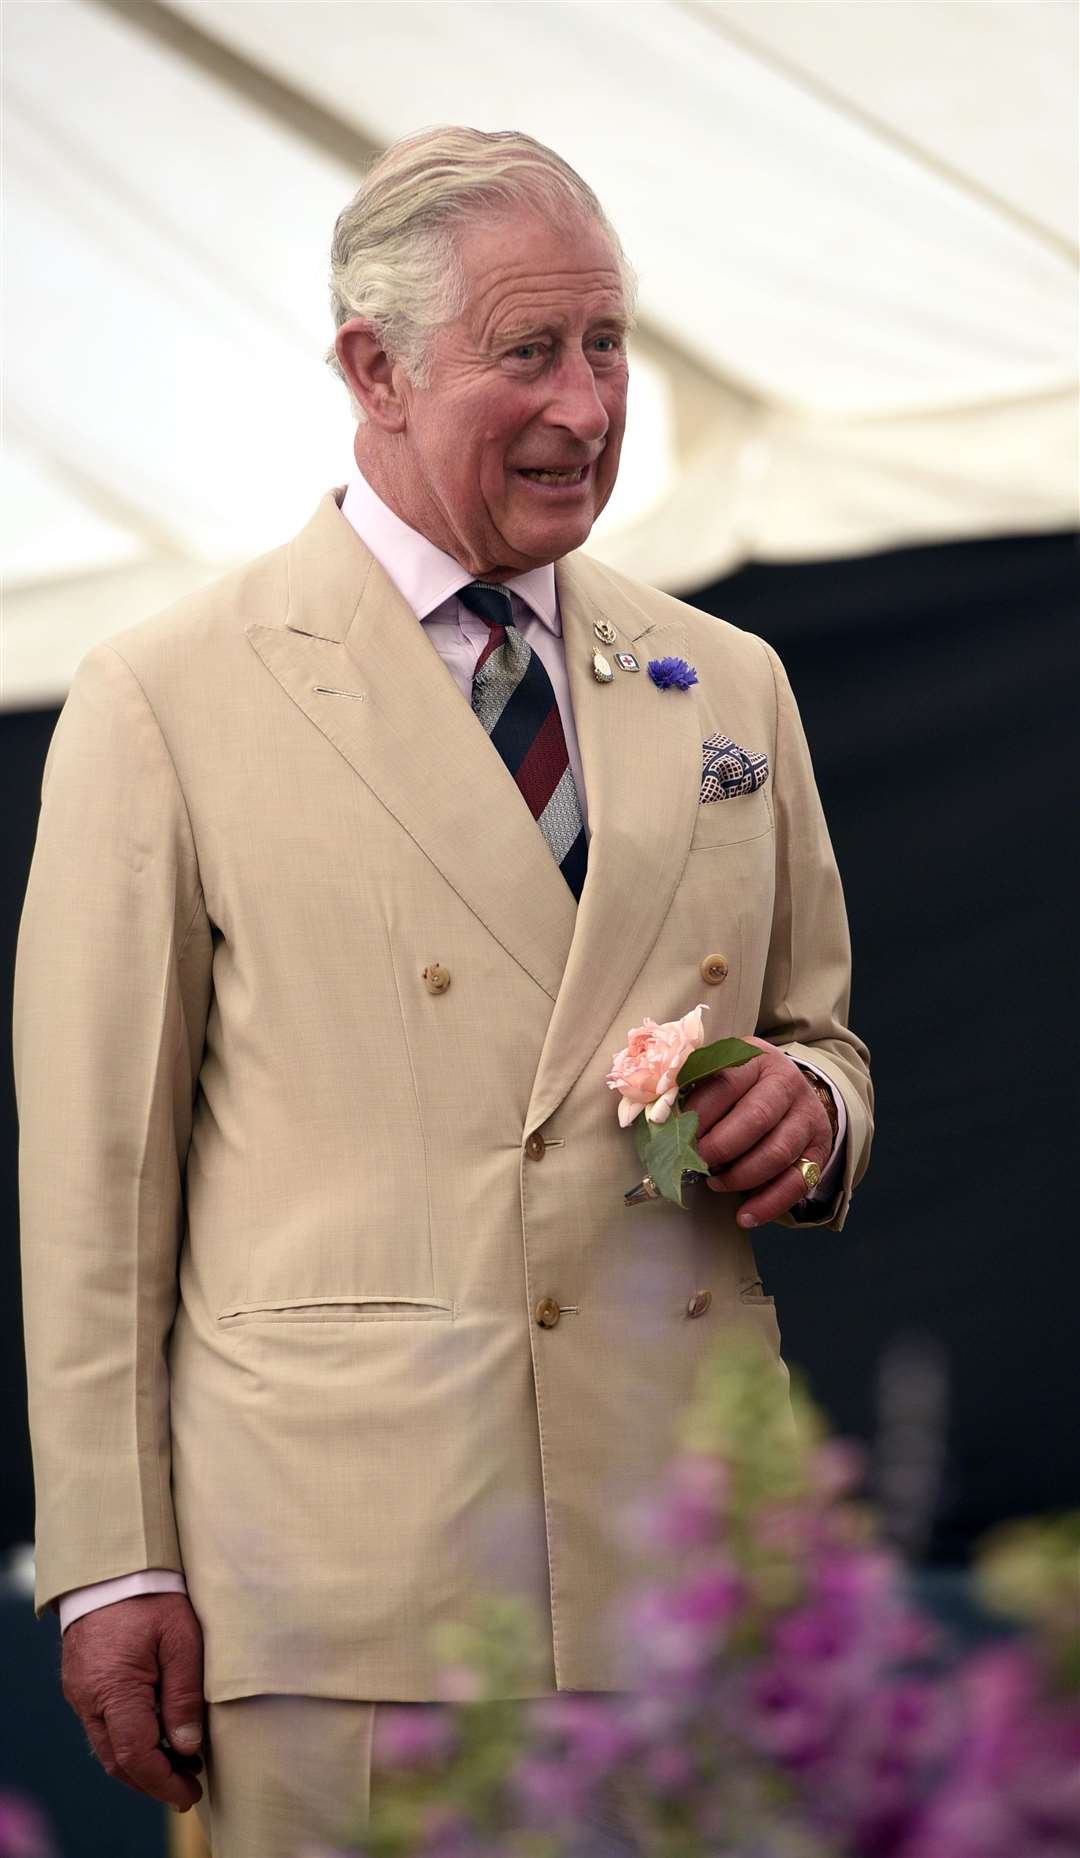 Prince Charles who knighted Sir John Hayes. Photo by Adam Fairbrother.